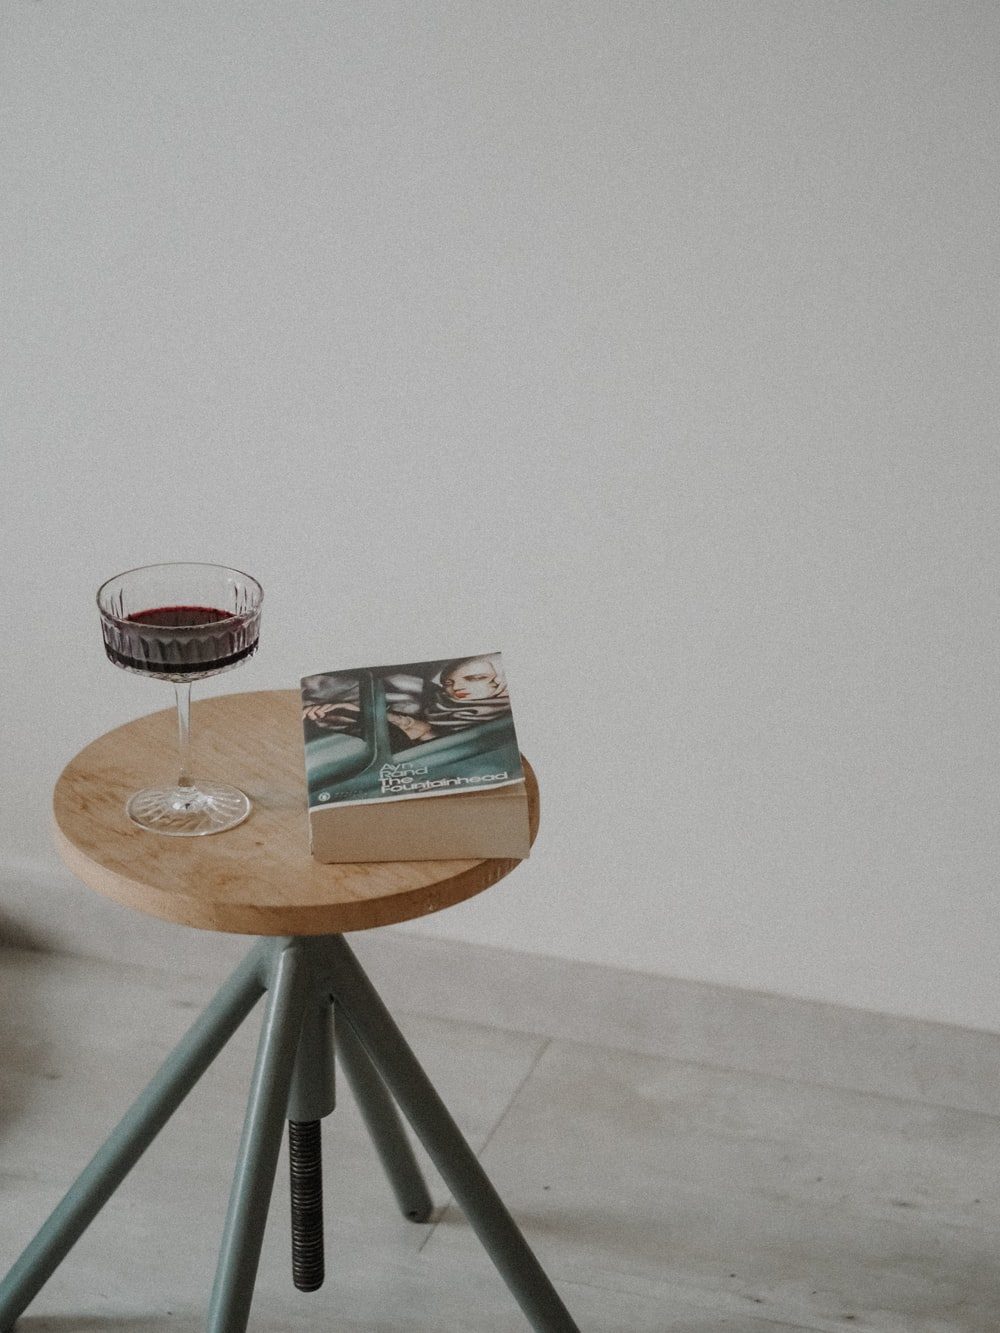 2 wine glasses on brown wooden table